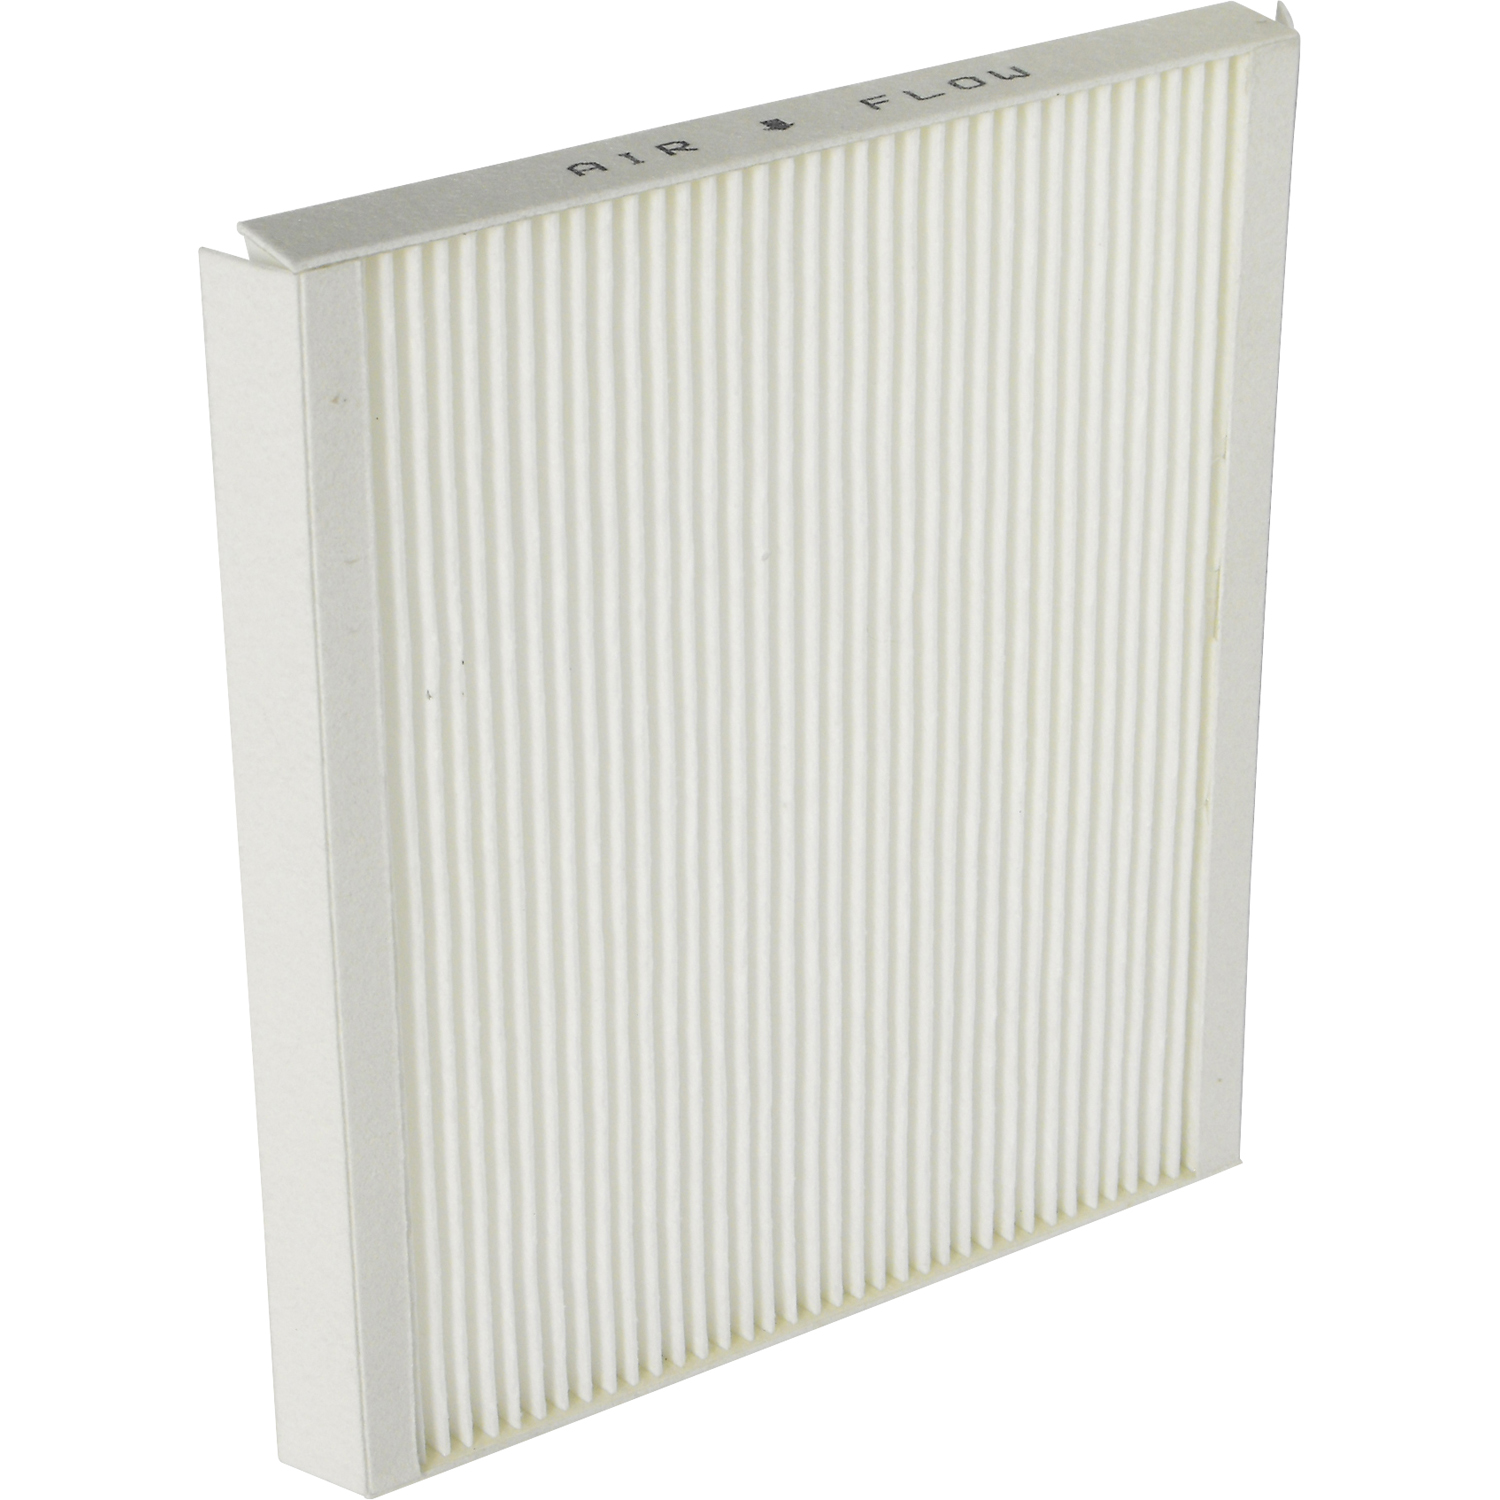 Particulate Cabin Air Filter FI 1189C